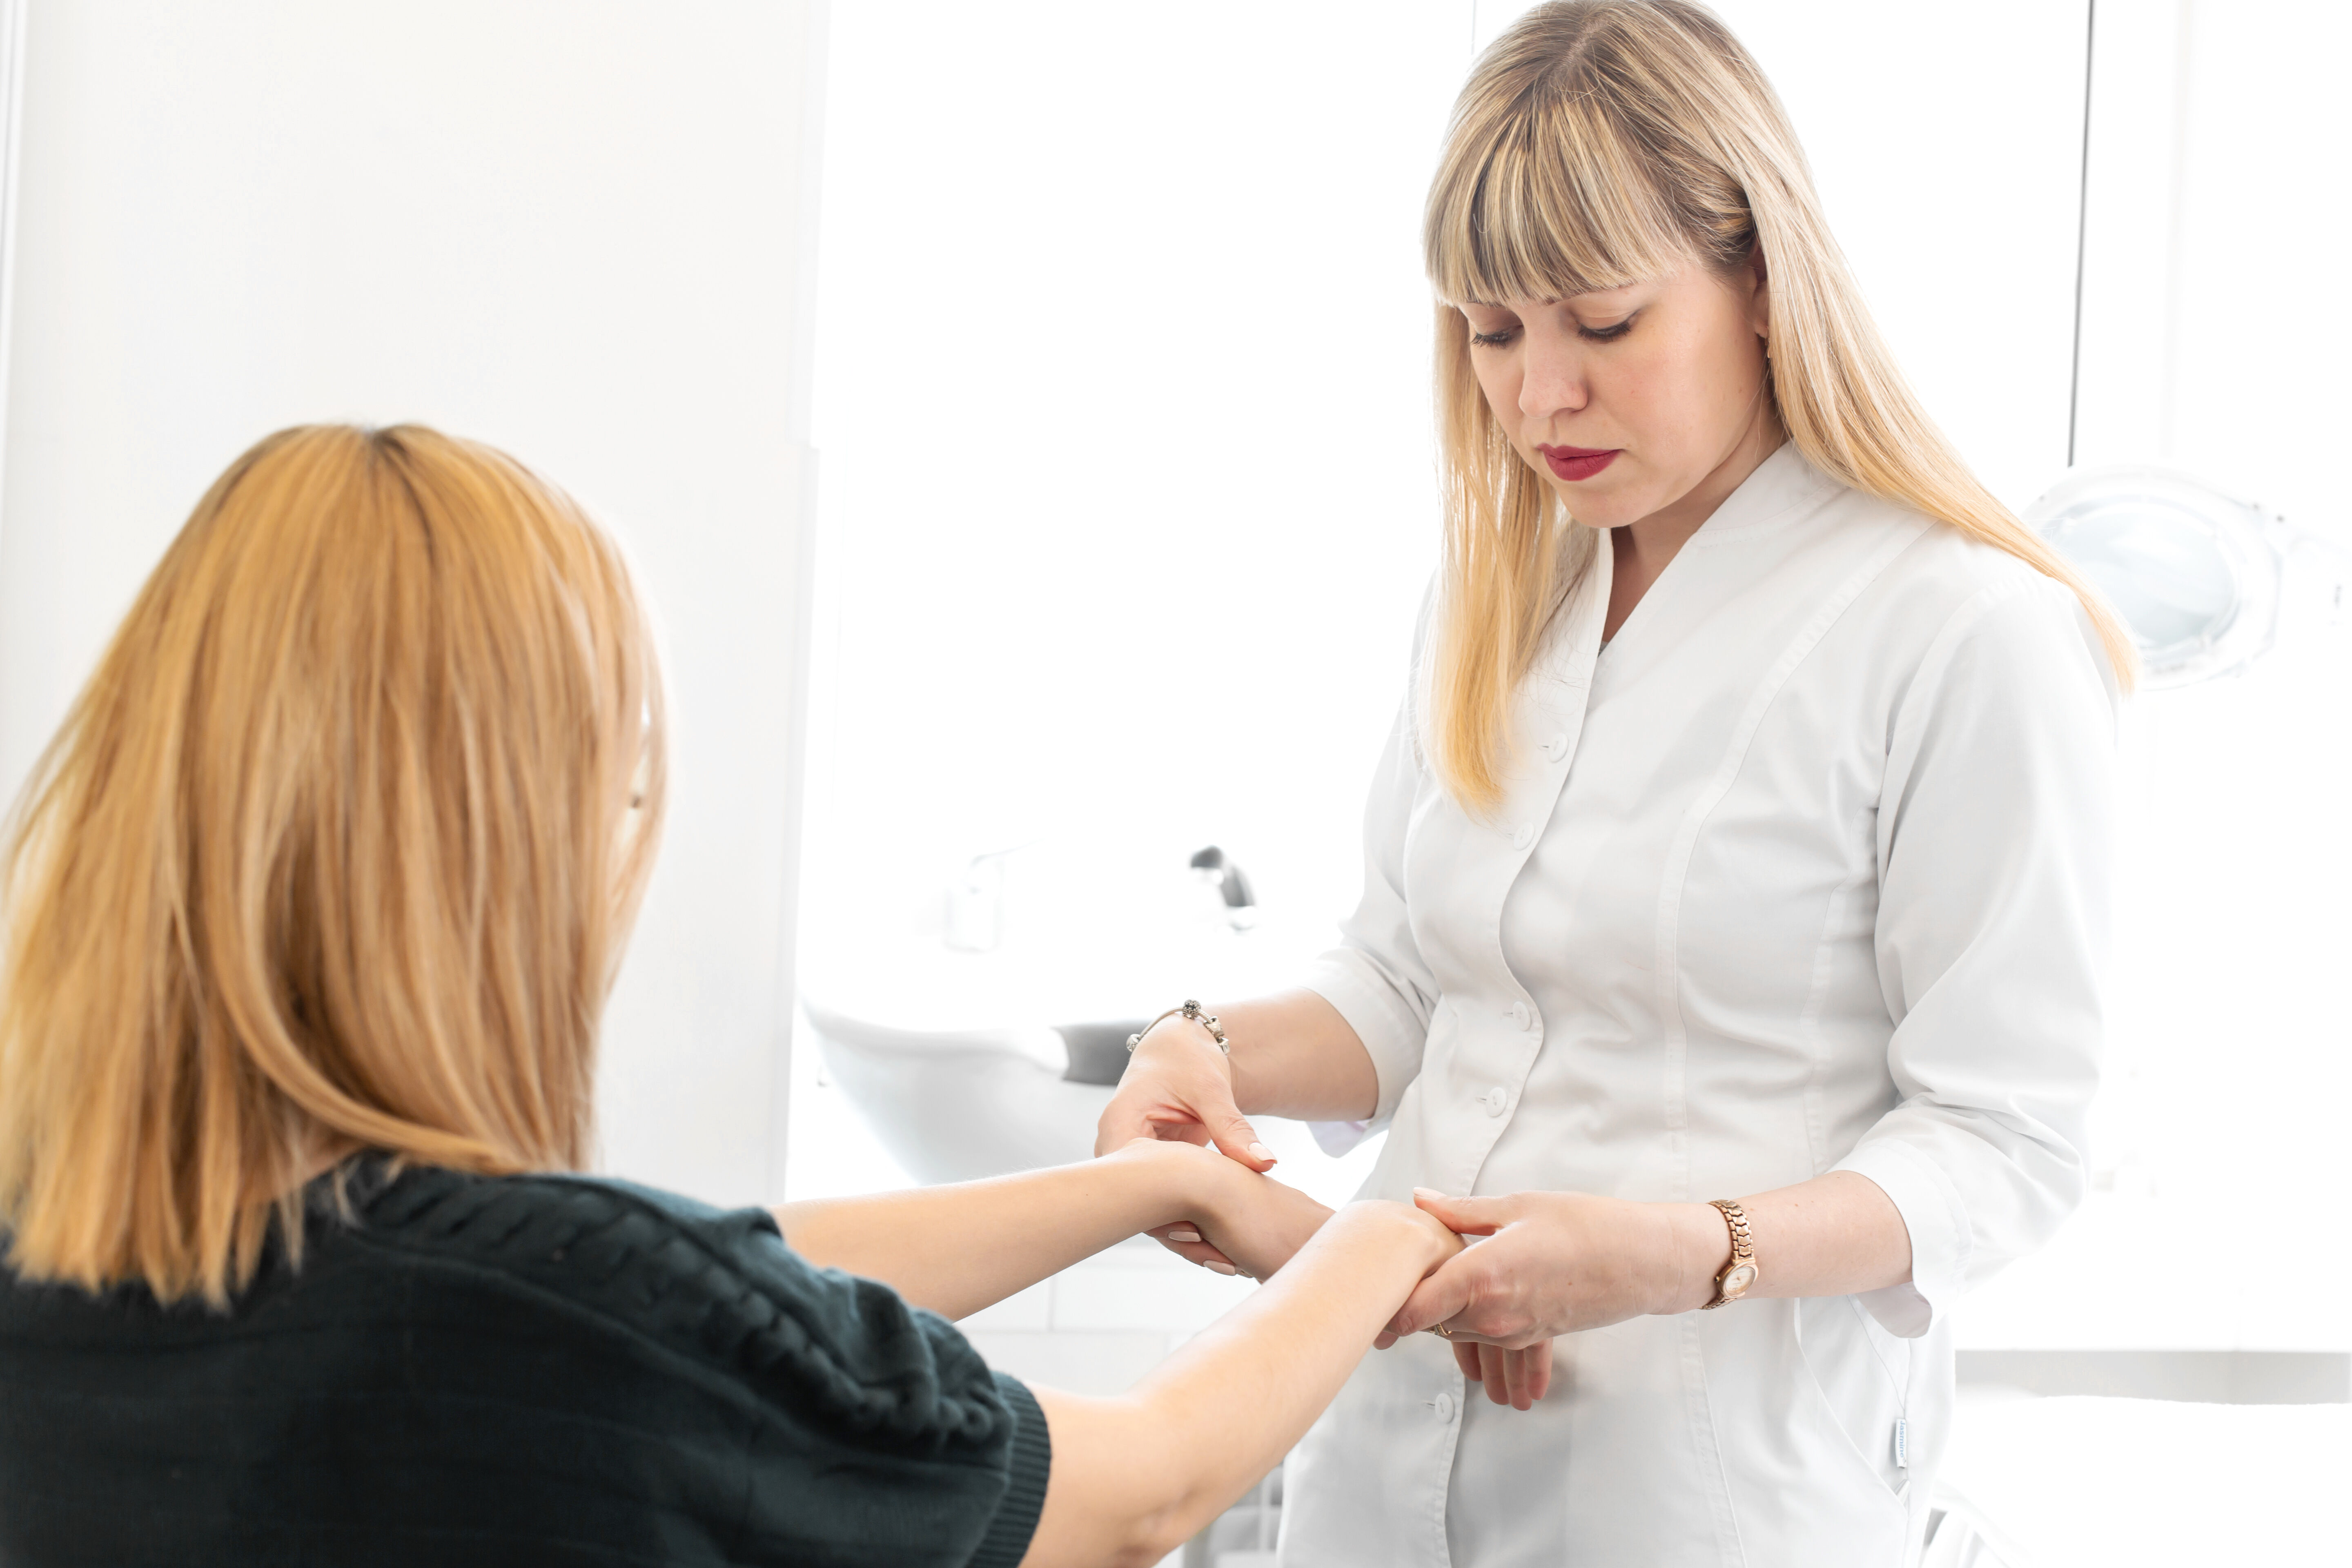 Dermatologist looks at the hands of the patient